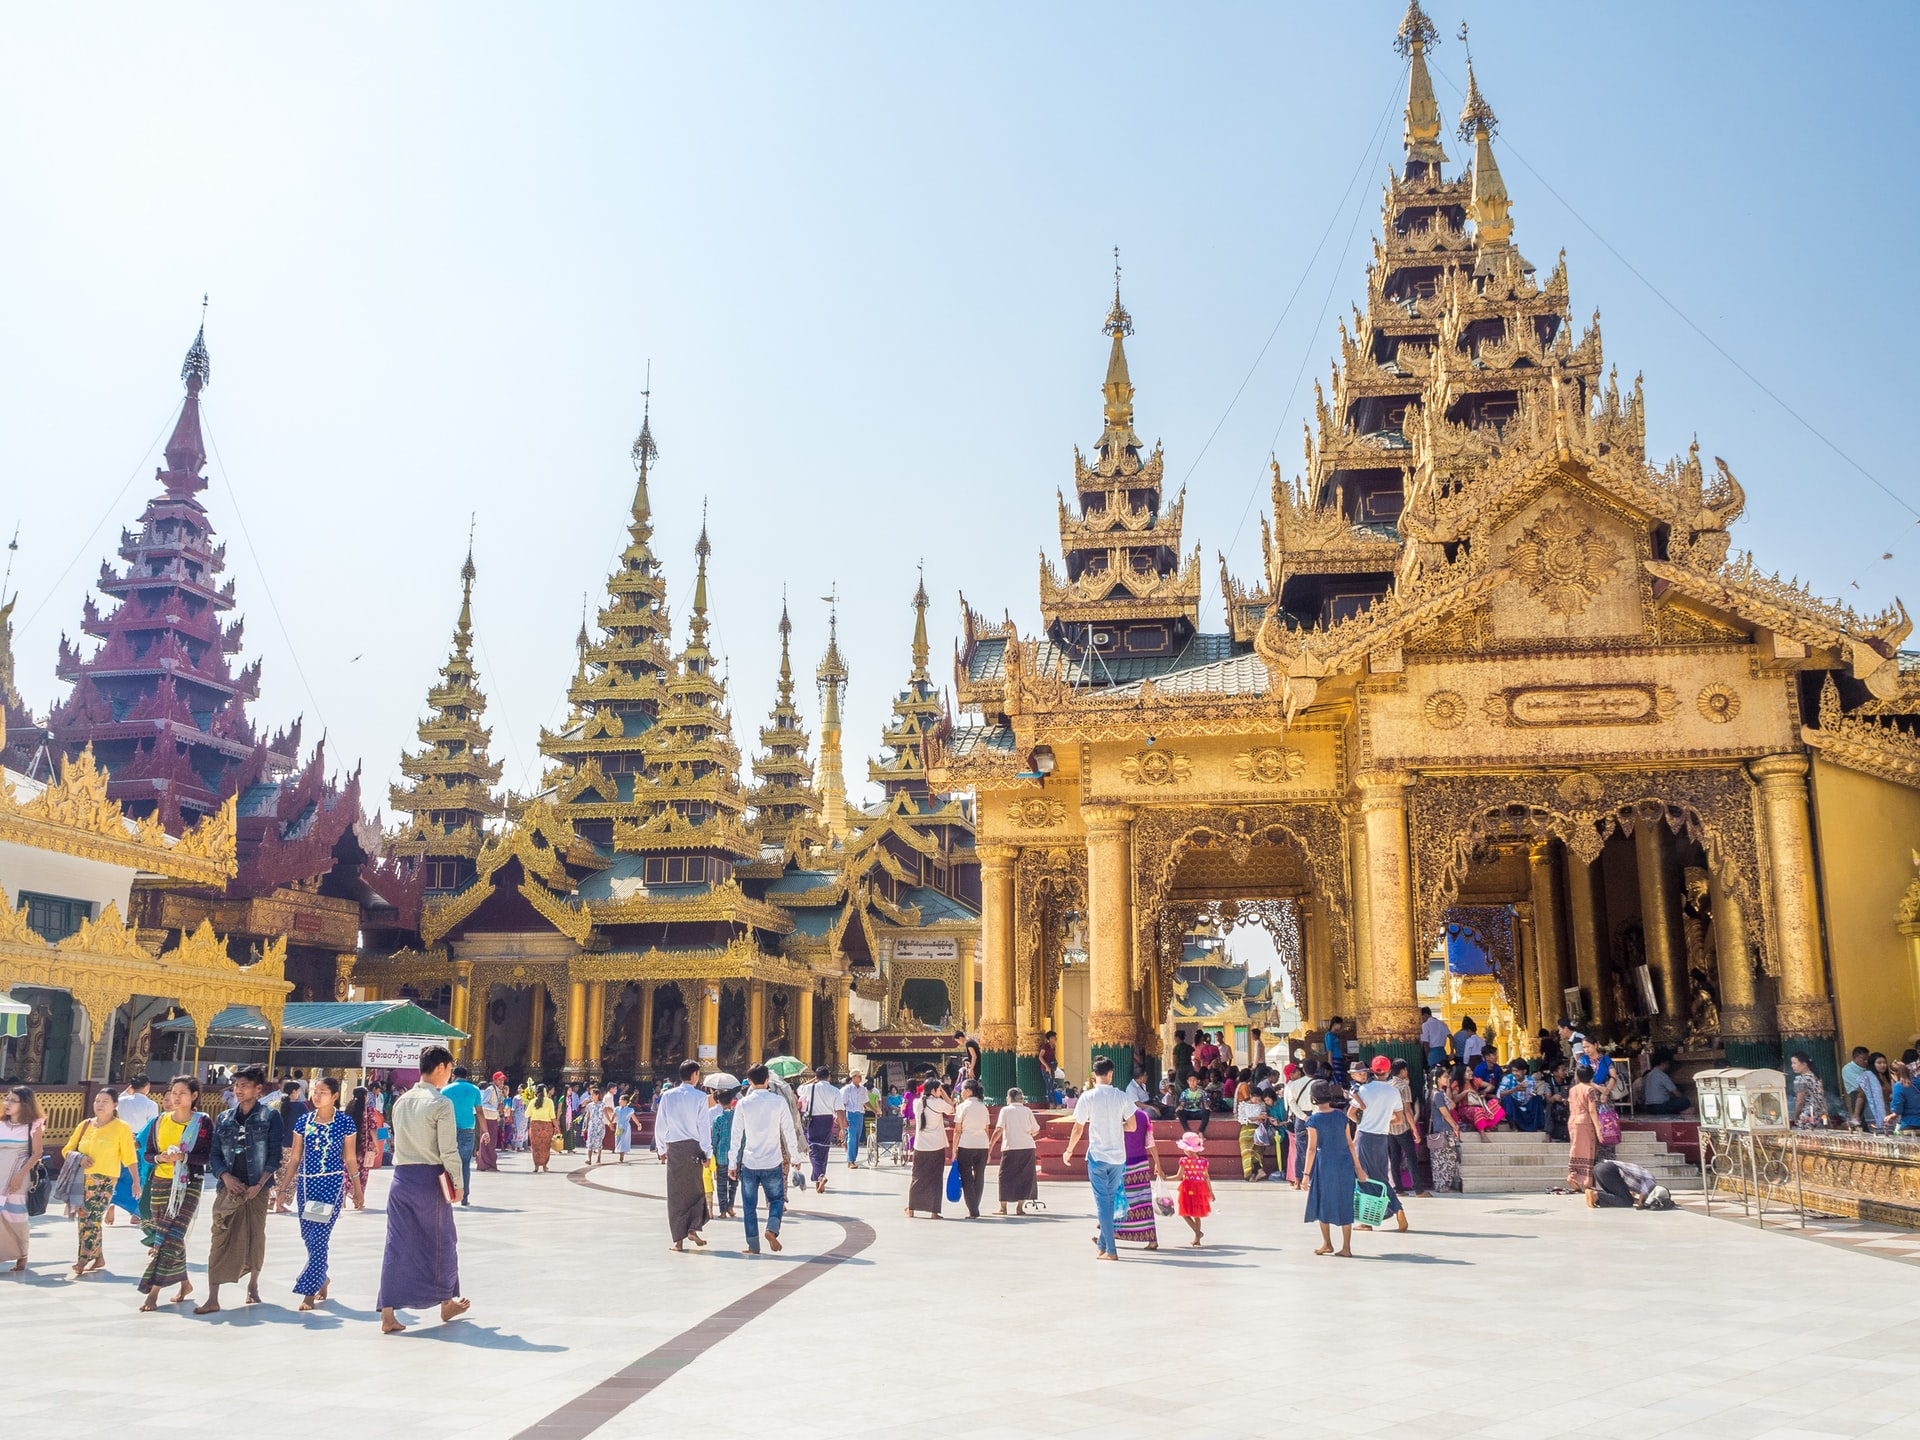 How Soon Can I Travel With My Newborn To Myanmar?